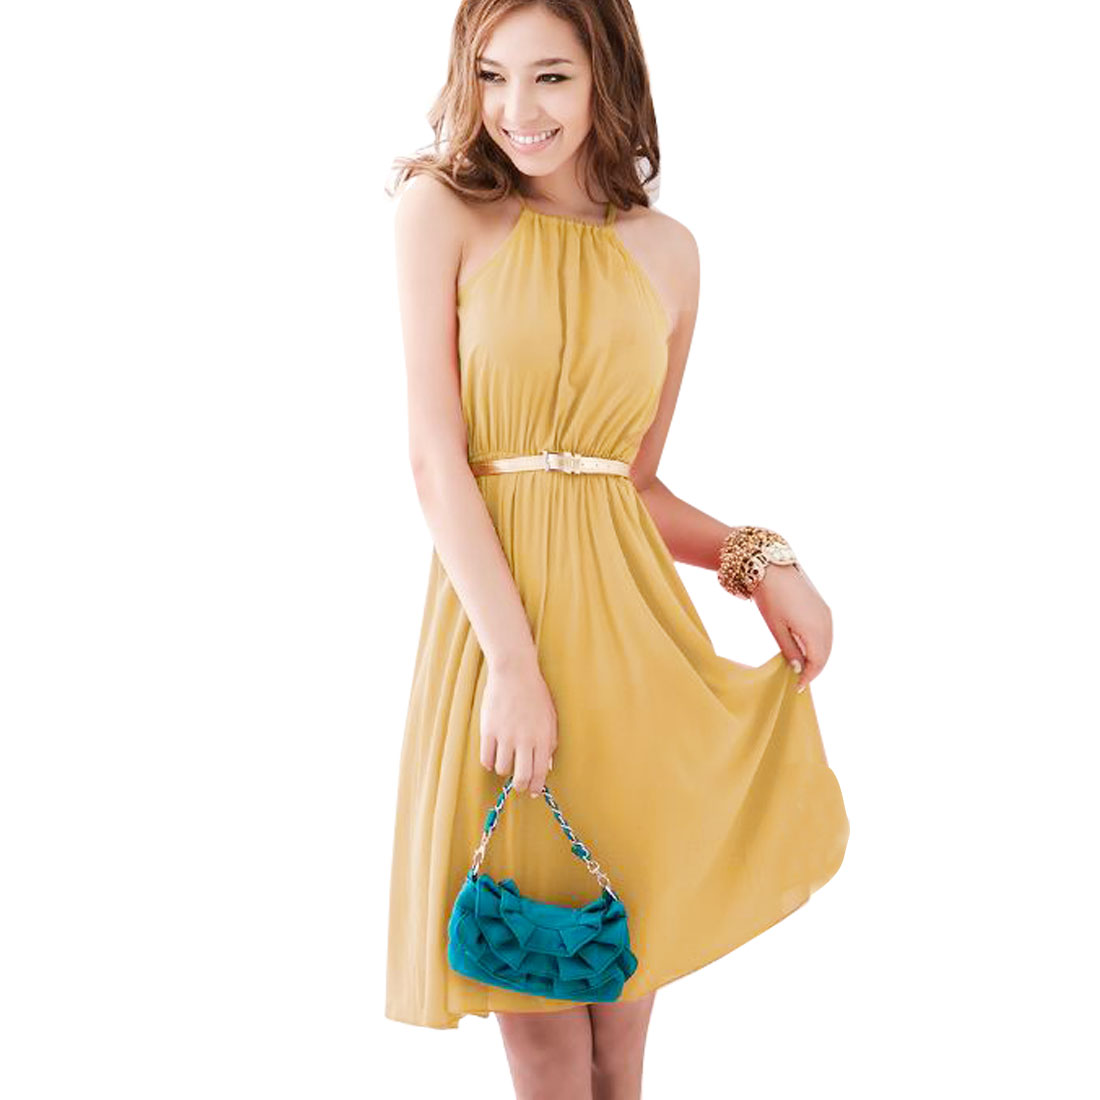 Women Self Tie Neck Sleeveless Semi Sheer Chiffon Mini Dress XS